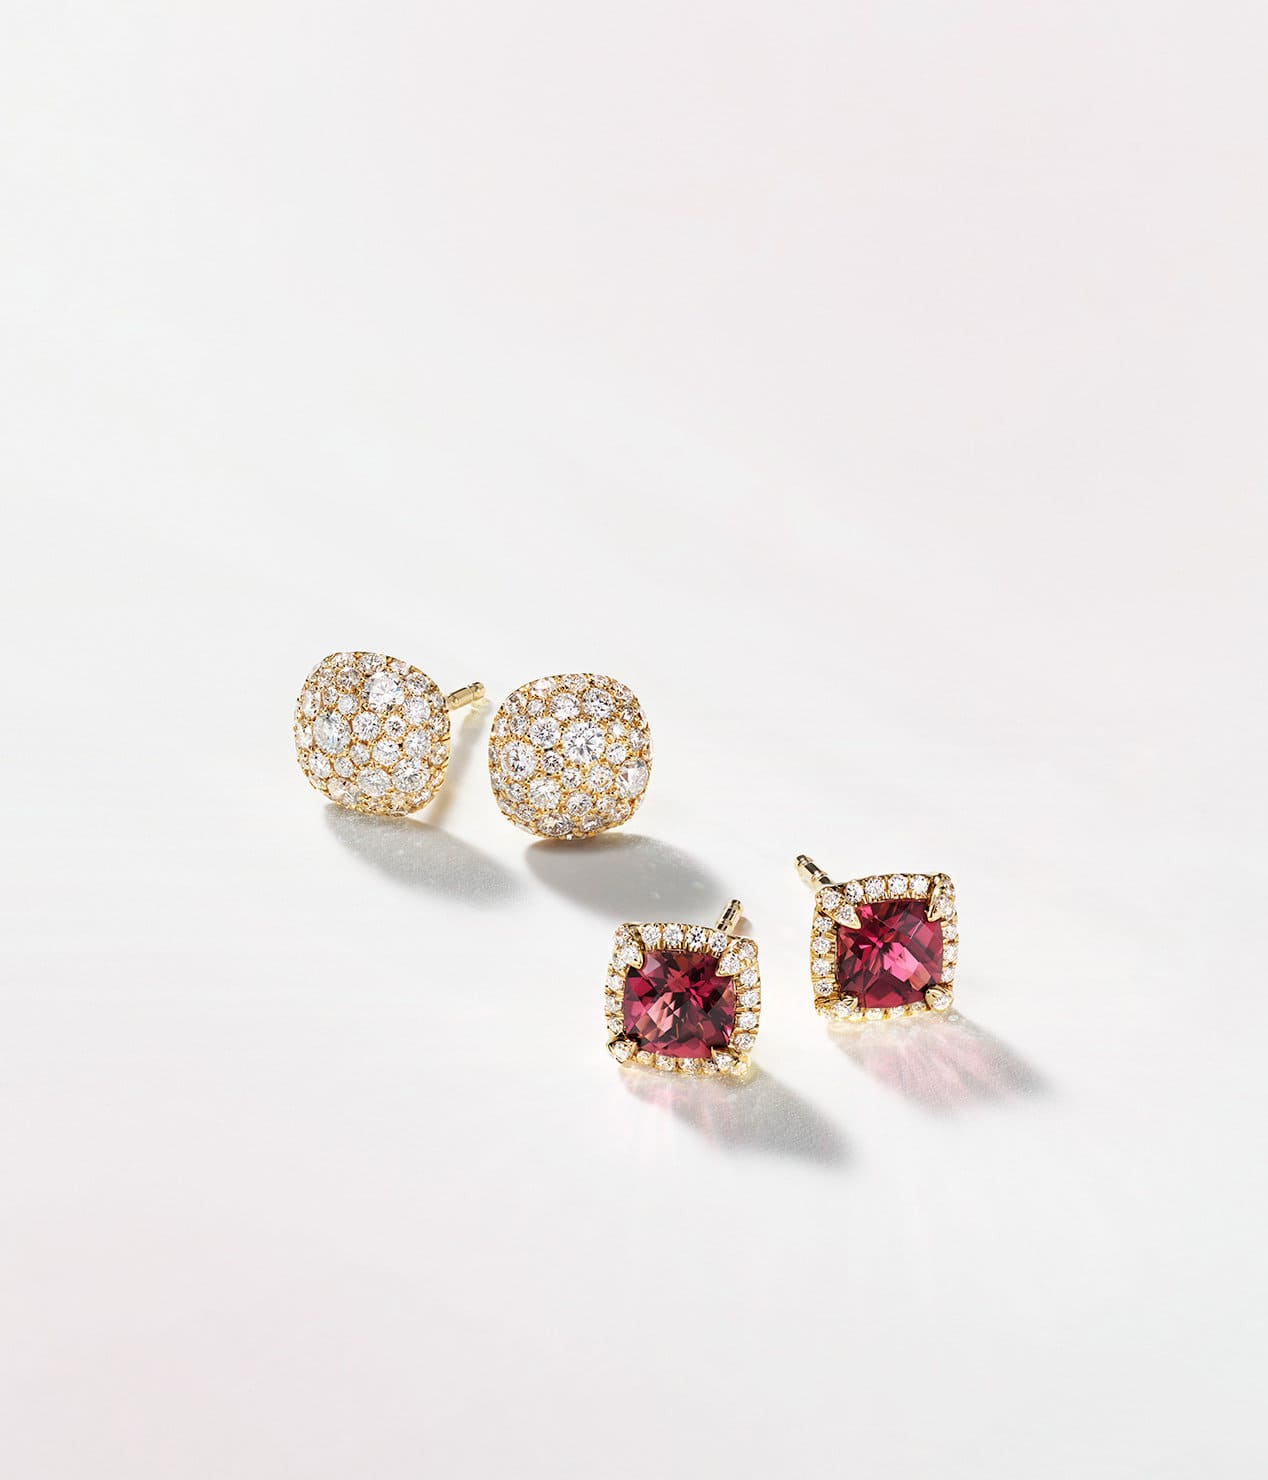 A  color photograph shows three pairs of David Yurman stud earrings scattered atop a white background with soft shadows. The women's jewelry is crafted from 18K yellow gold with pavé diamonds in the shape of circles, cushions or stars. The center pair features cushion-cut pink tourmaline center stones.